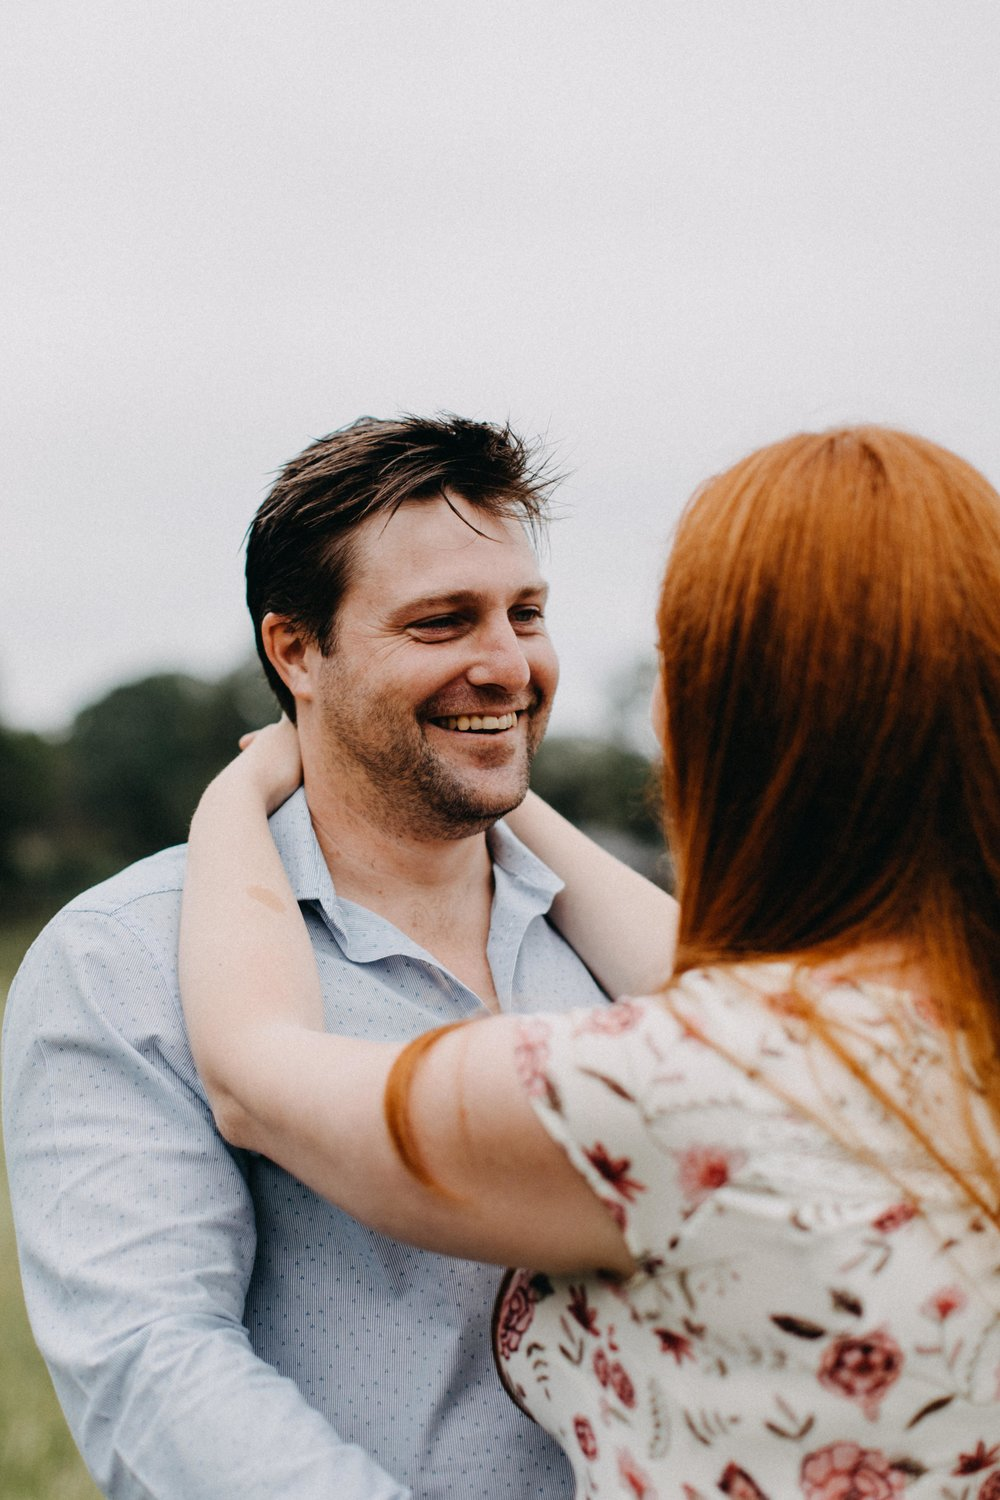 camden-engagement-session-wollondilly-photography-nadine-bernard-3.jpg